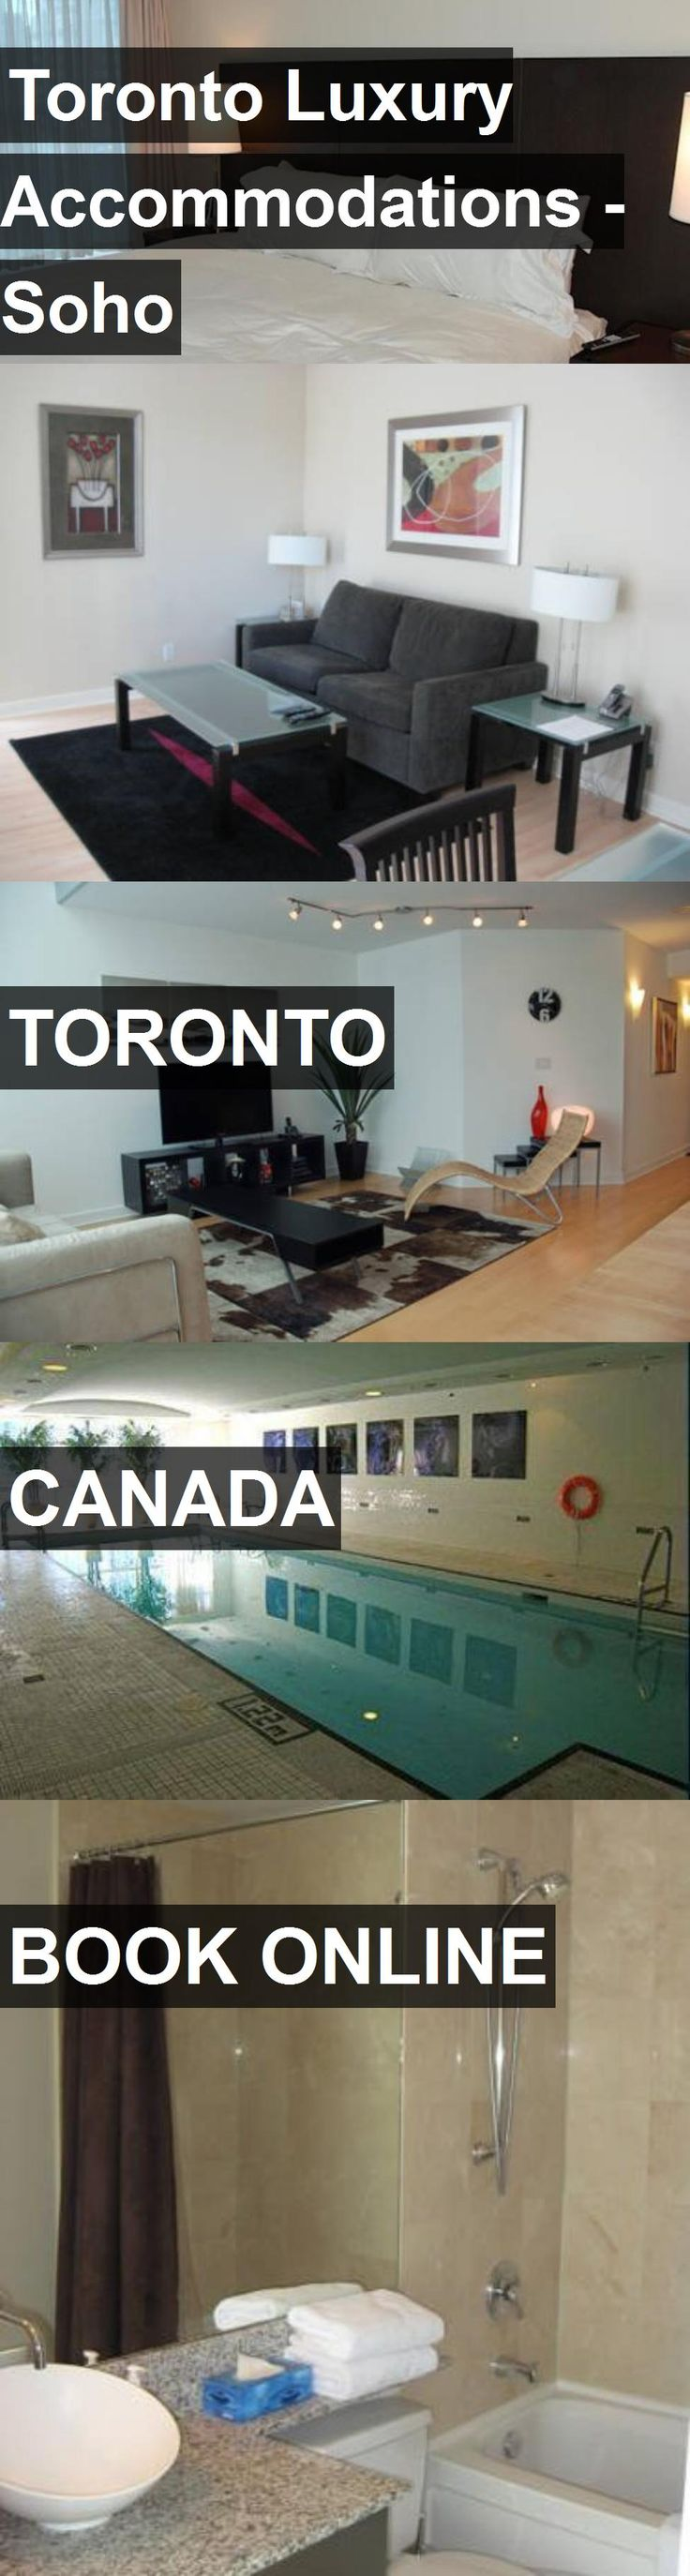 Hotel Toronto Luxury Accommodations - Soho in Toronto, Canada. For more information, photos, reviews and best prices please follow the link. #Canada #Toronto #travel #vacation #hotel